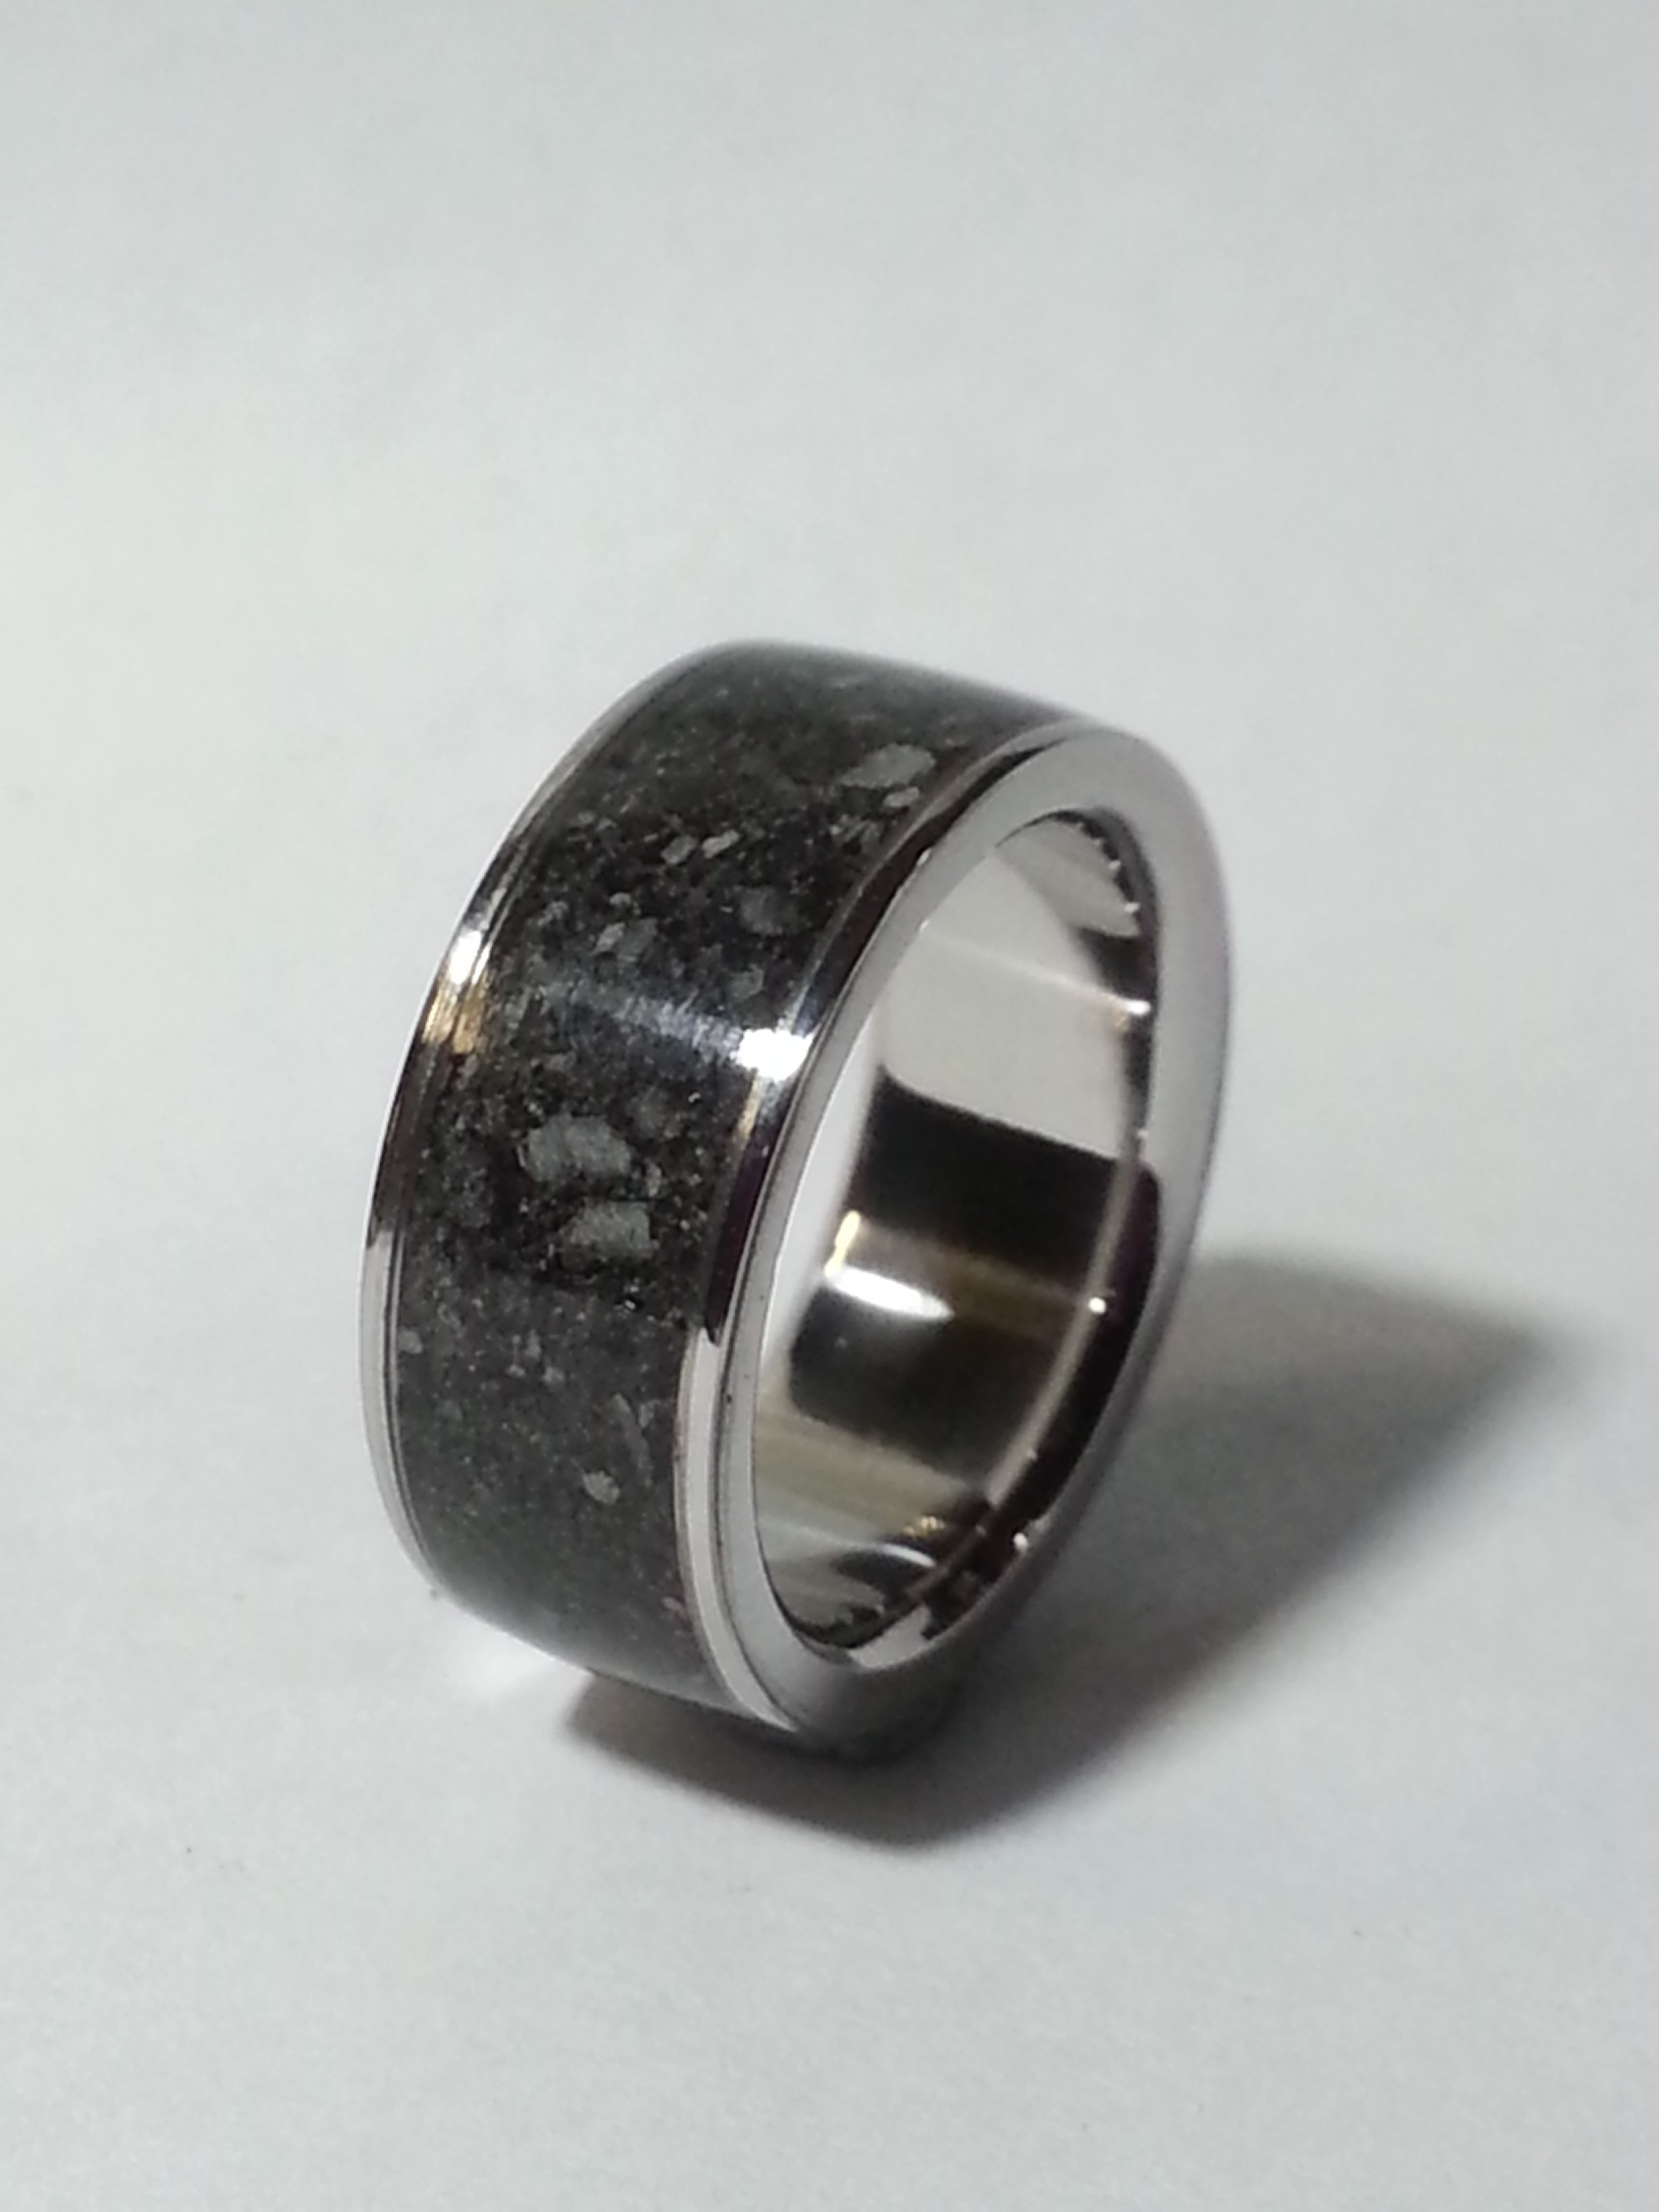 Stainless Steel Ring + Cremation Ashes